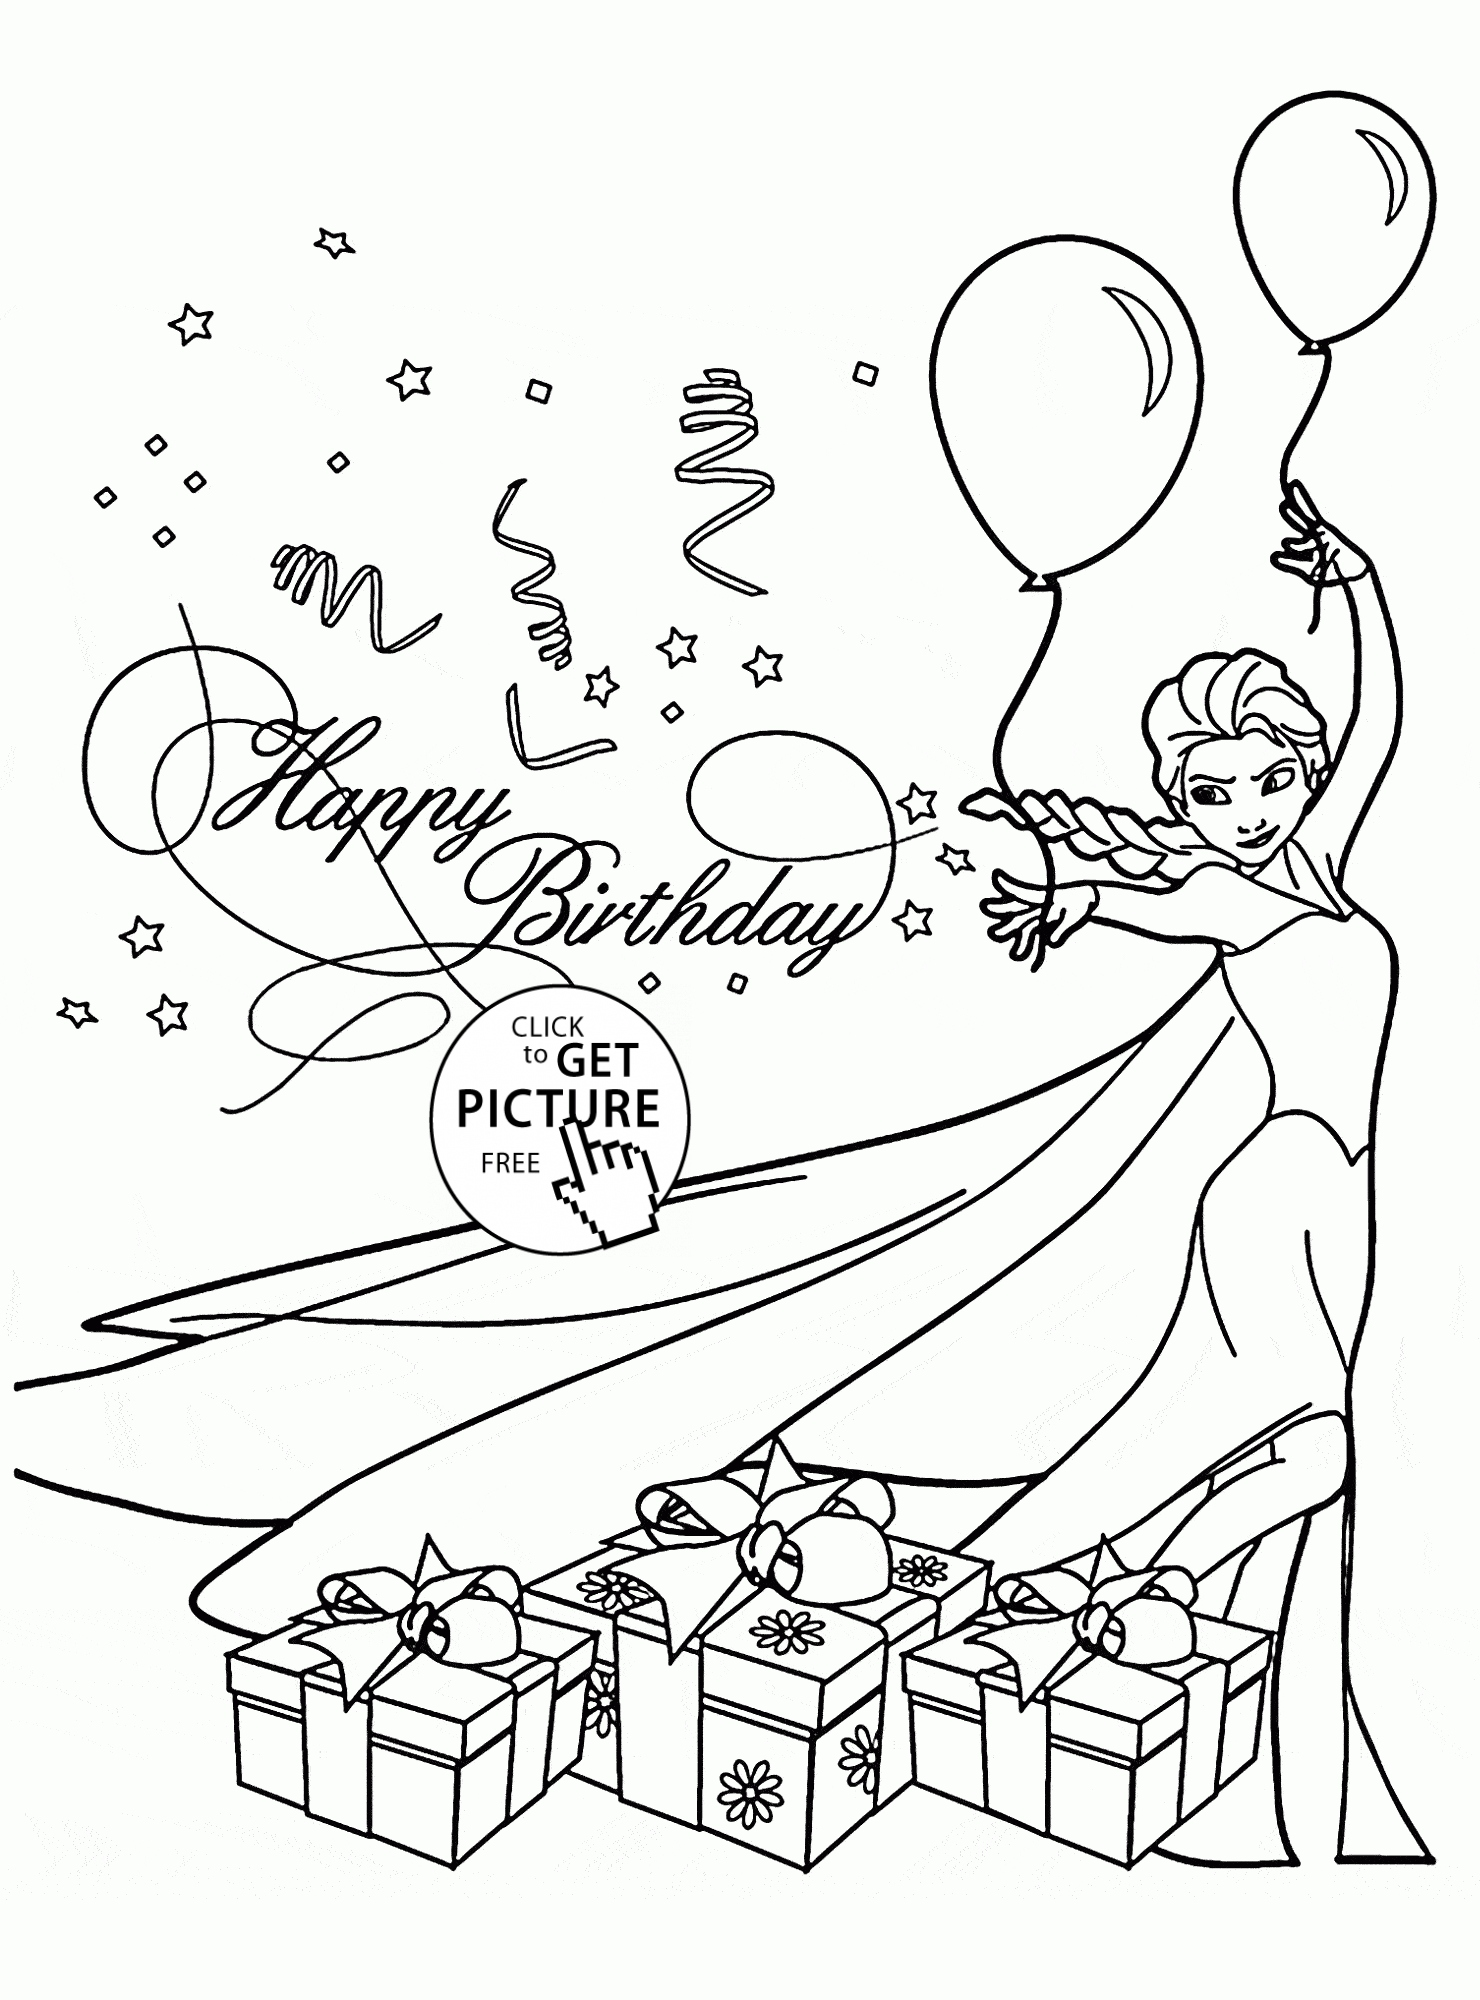 Birthday Card Coloring Page At Getcolorings